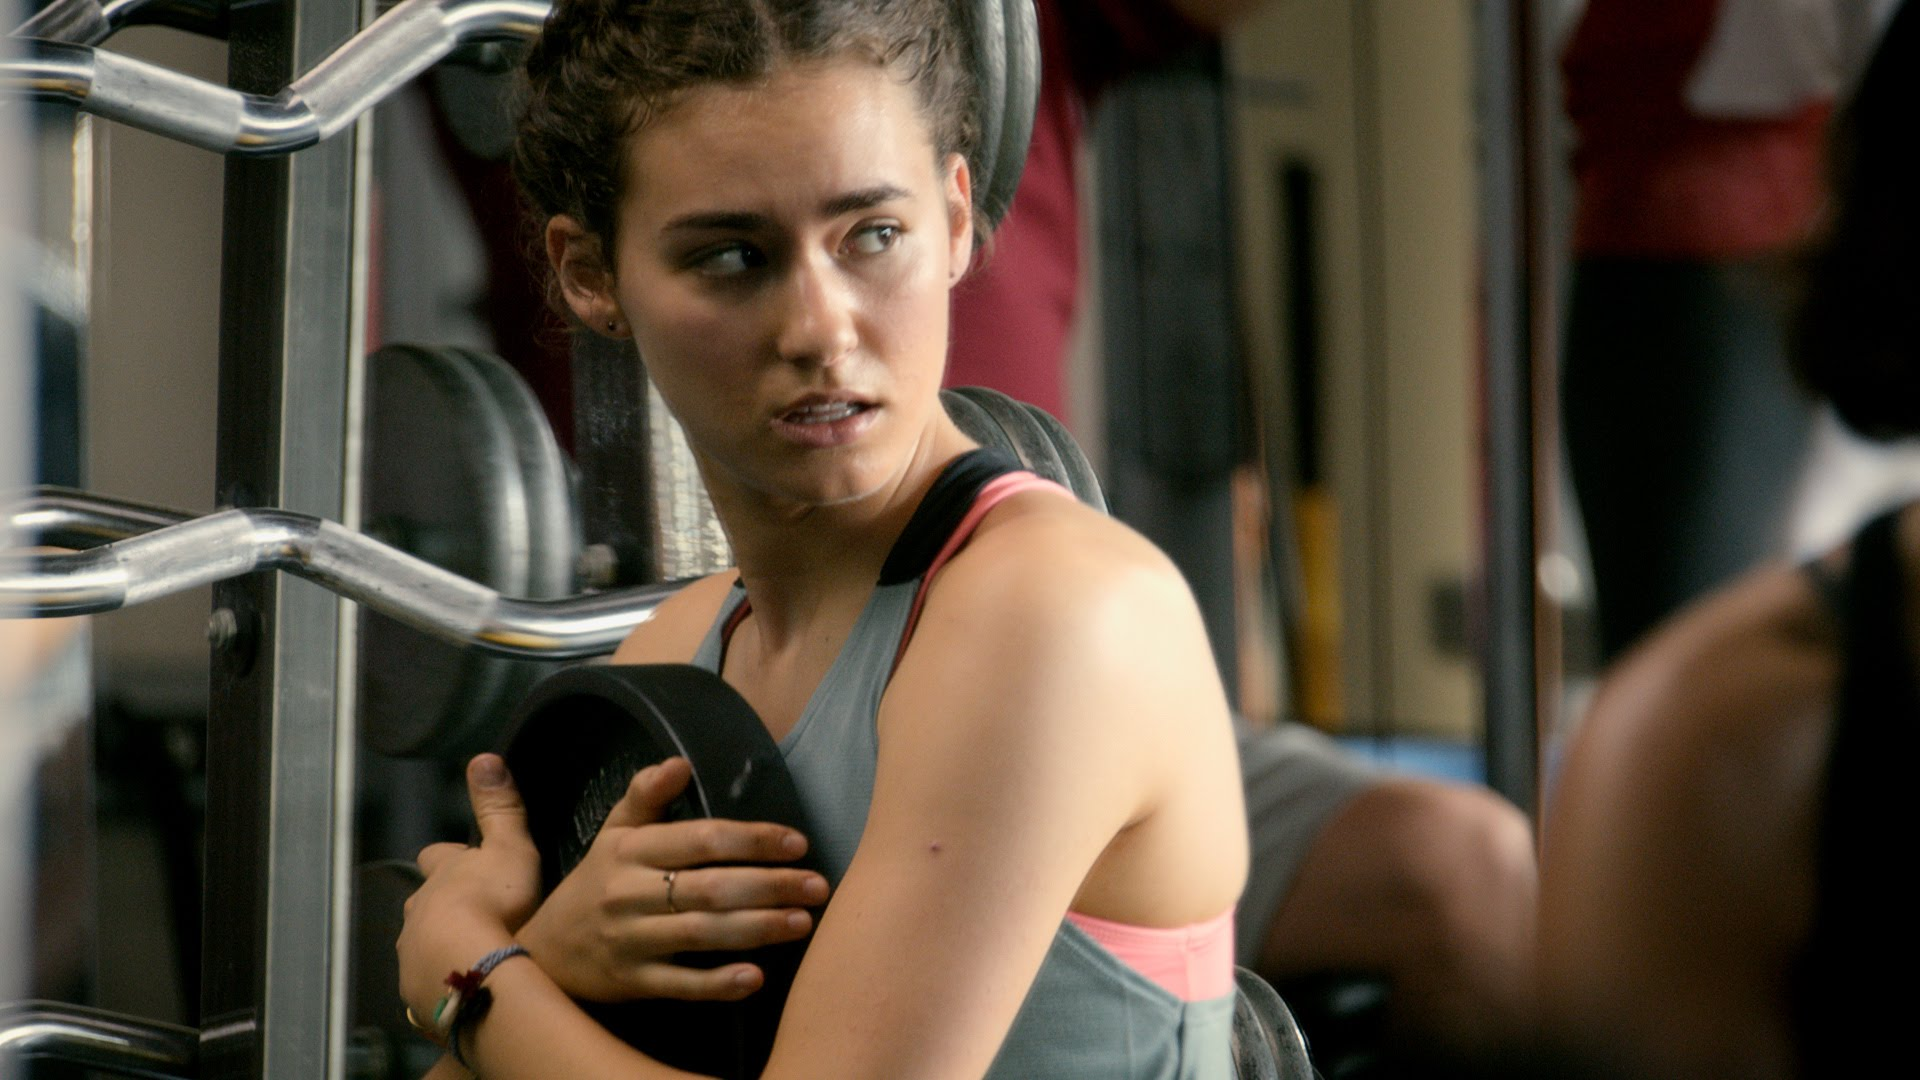 New NikeWomen Ad Aims To Empower, Plays Off Insecurities And